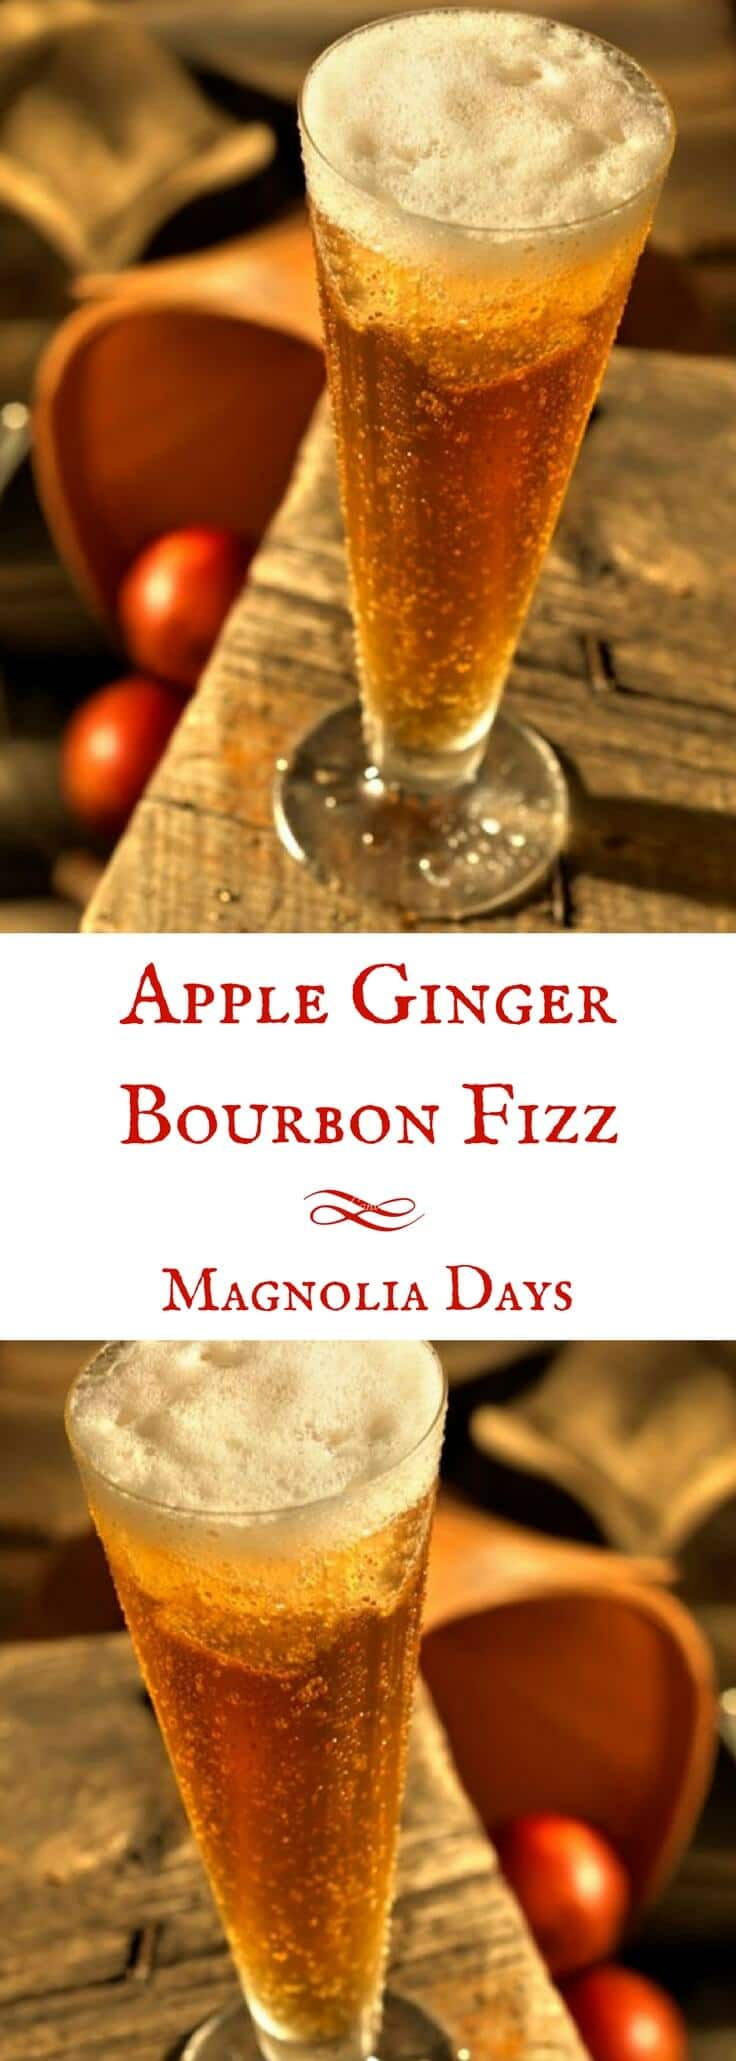 The classic fizz cocktail gets a Southern twist with bourbon, apple butter, and ginger beer instead of plain soda.  Try this Apple Ginger Bourbon Fizz at your next shindig.